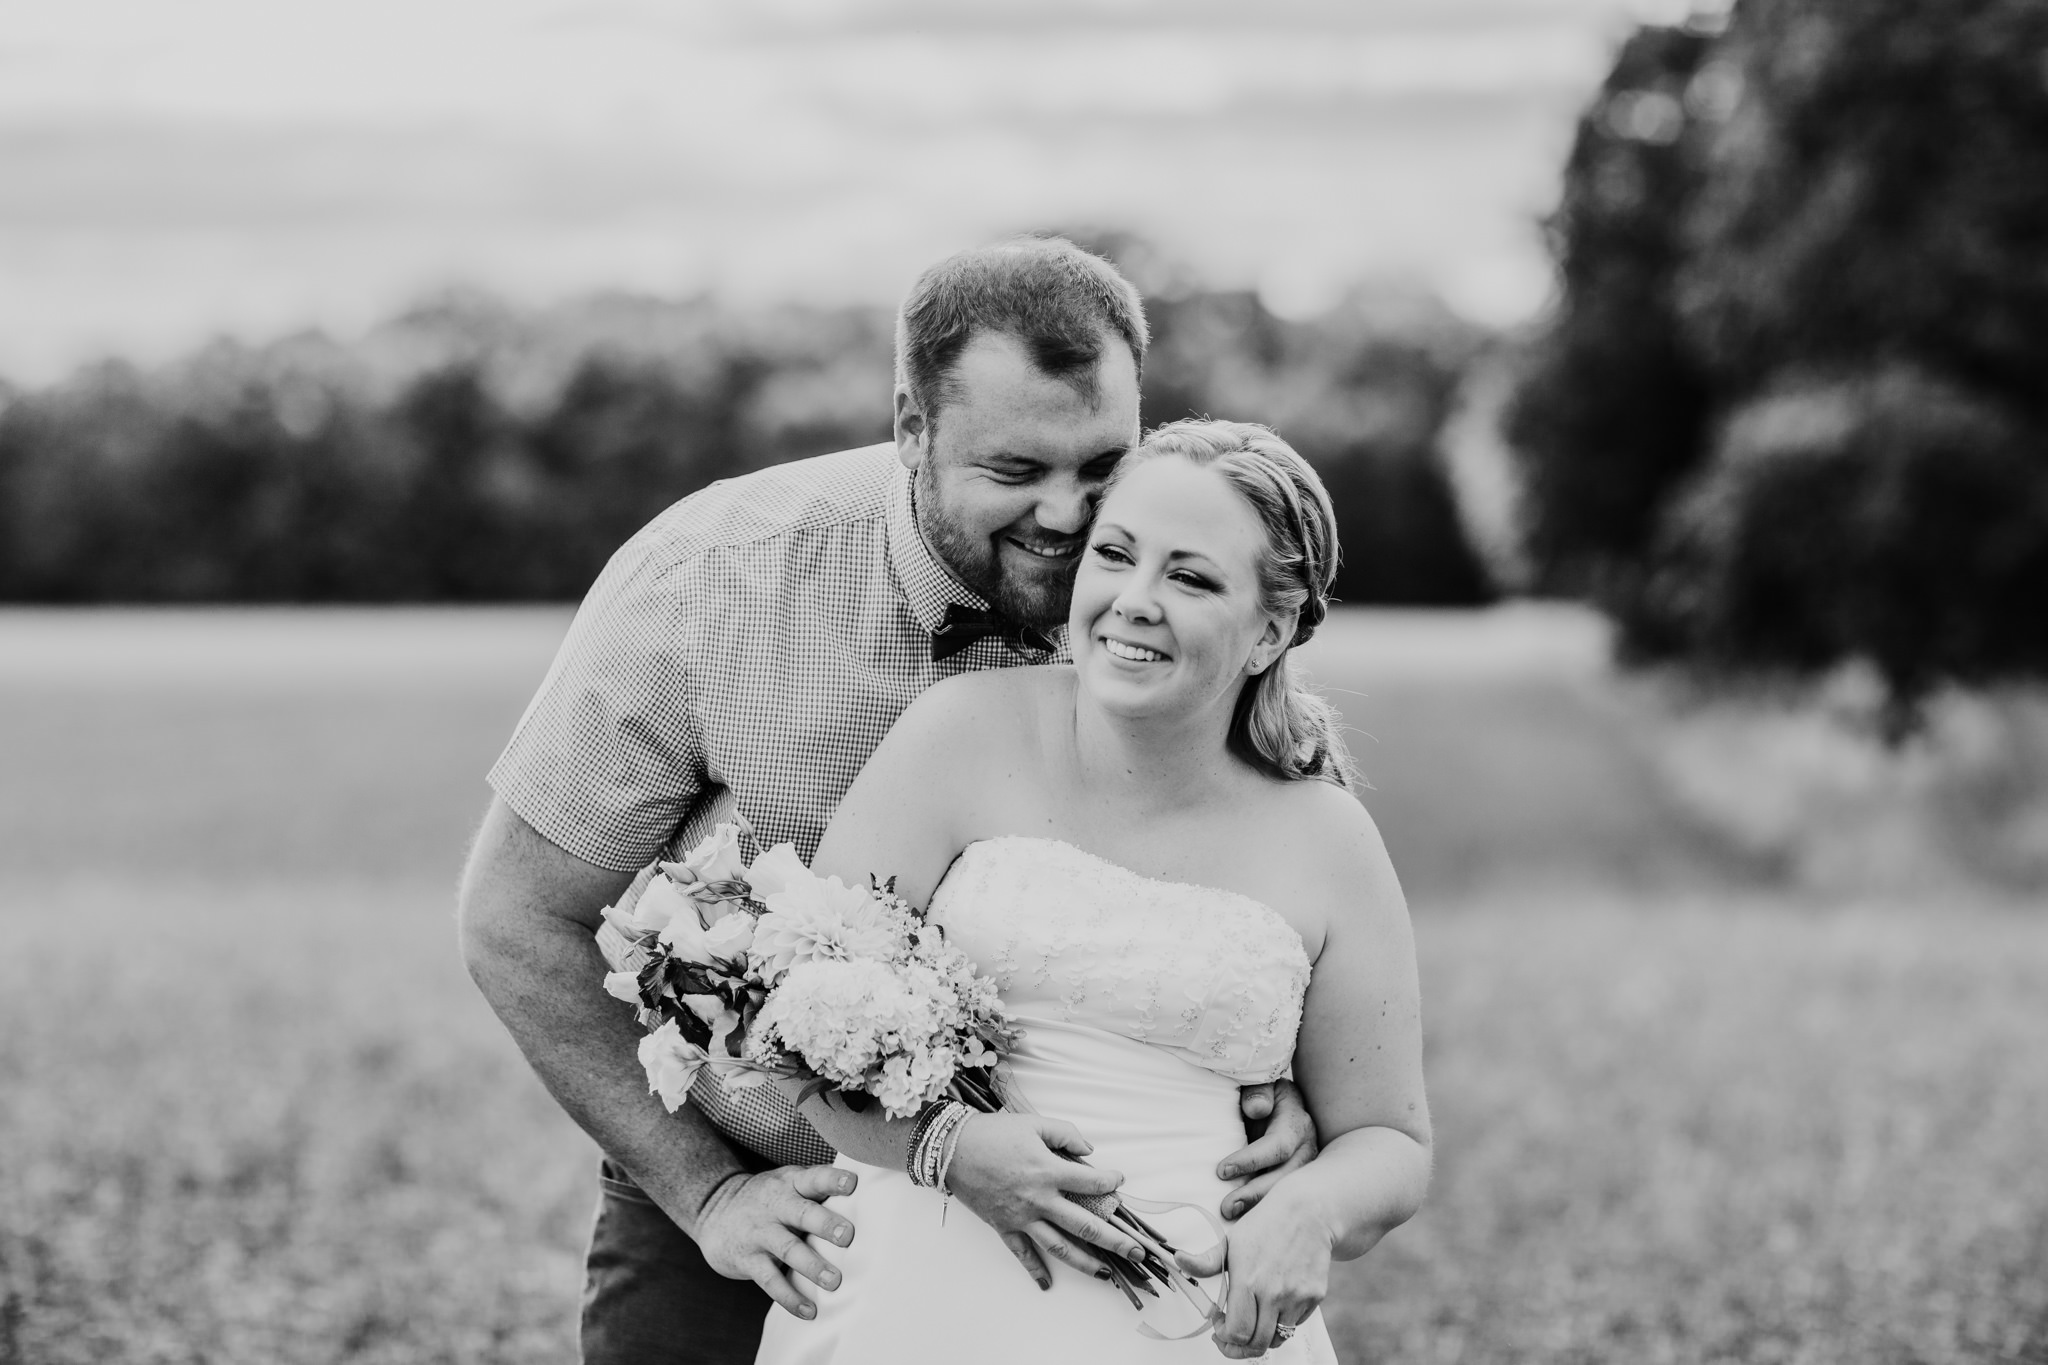 groom whispering something funny into brides ear while standing in a field